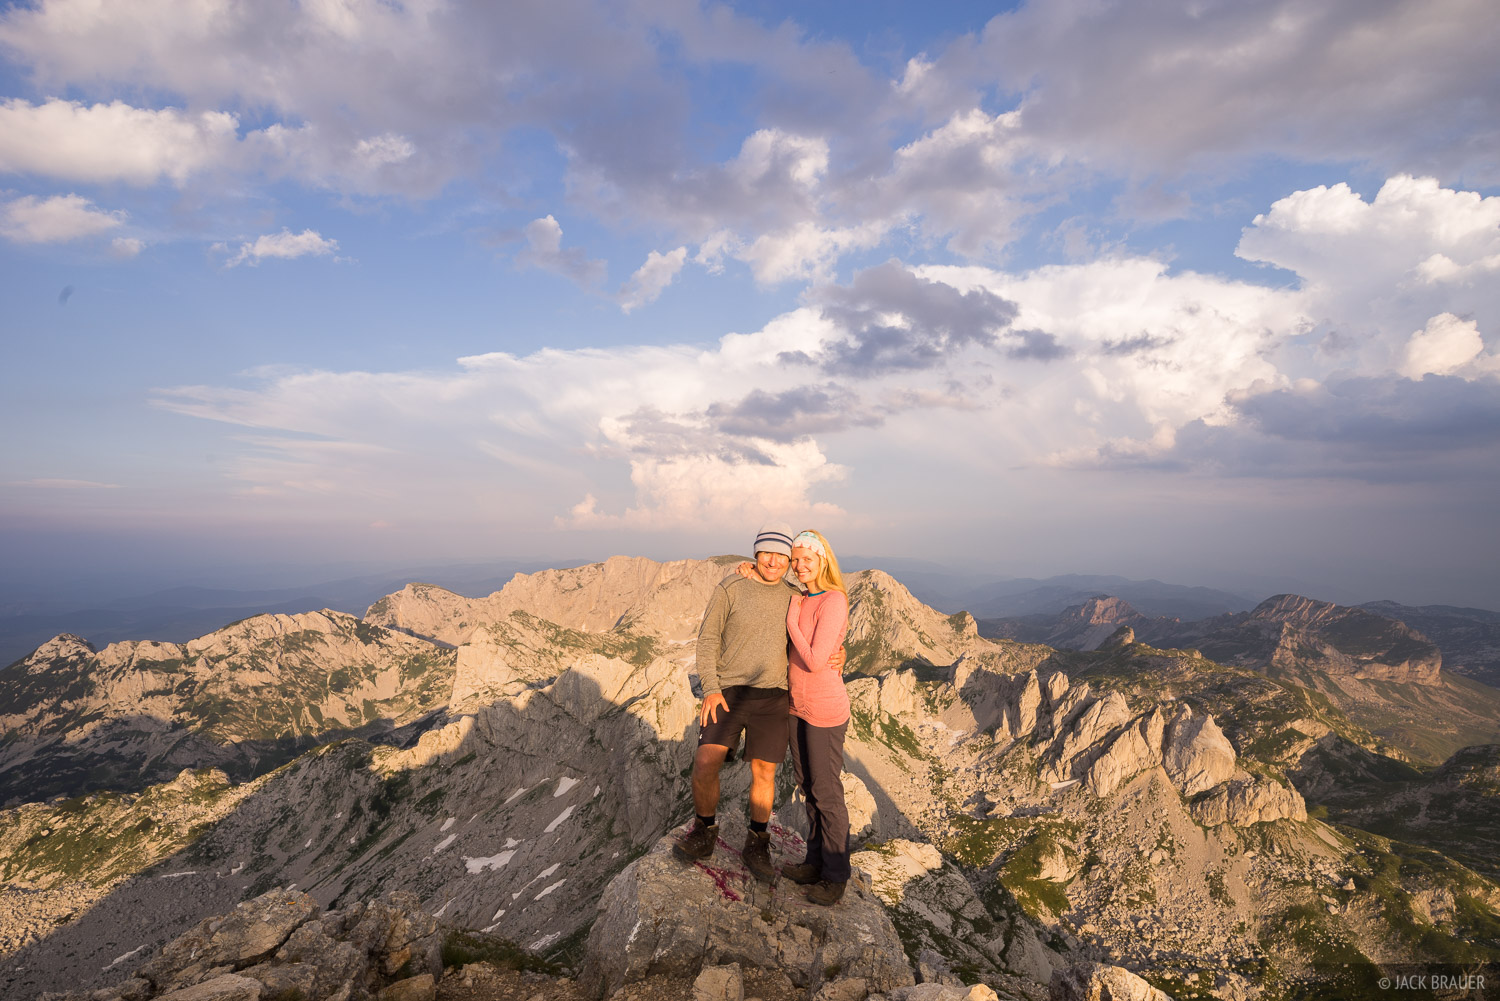 Jack and Claudia on the summit of Bobotov Kuk (2522 m / 8274 ft), the highest mountain in the Durmitor range of Montenegro.